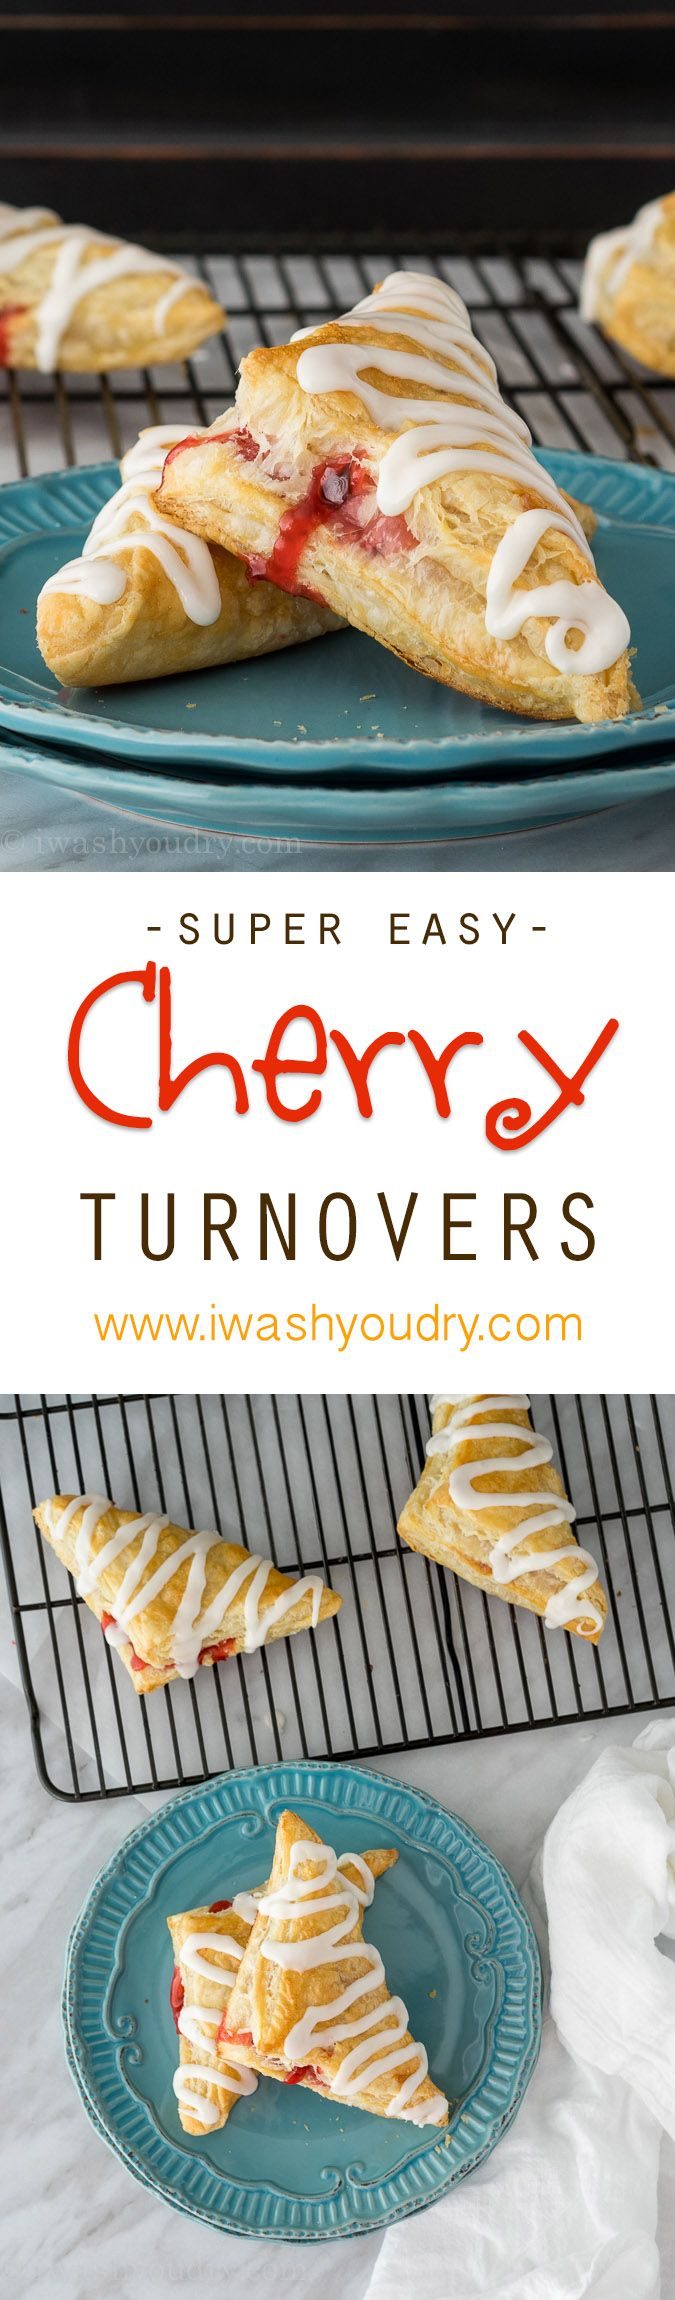 Only a few simple ingredients for these Super Easy Cherry Turnovers!